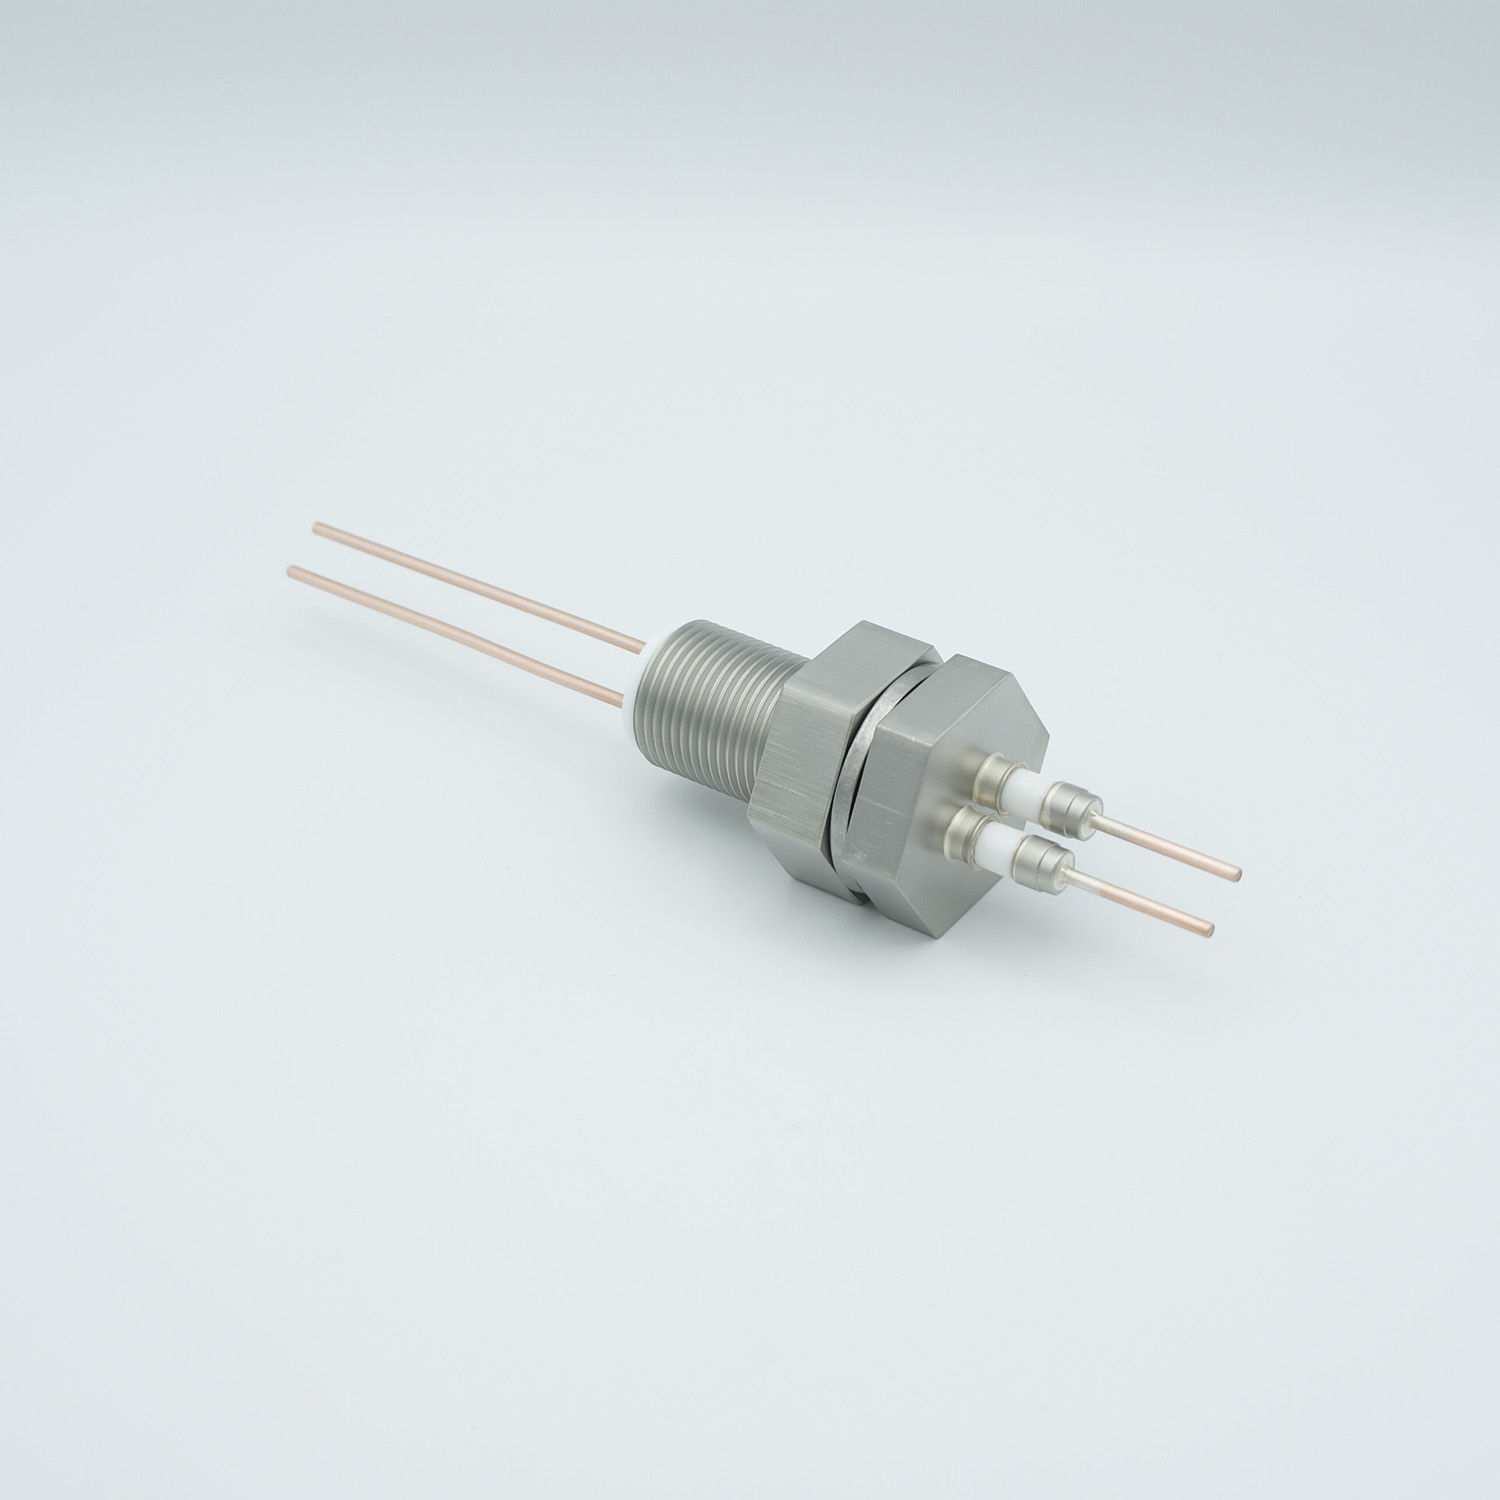 2 pins feedthrough 2000Volt / 15 Amp. Nickel conductor, base plate fitting